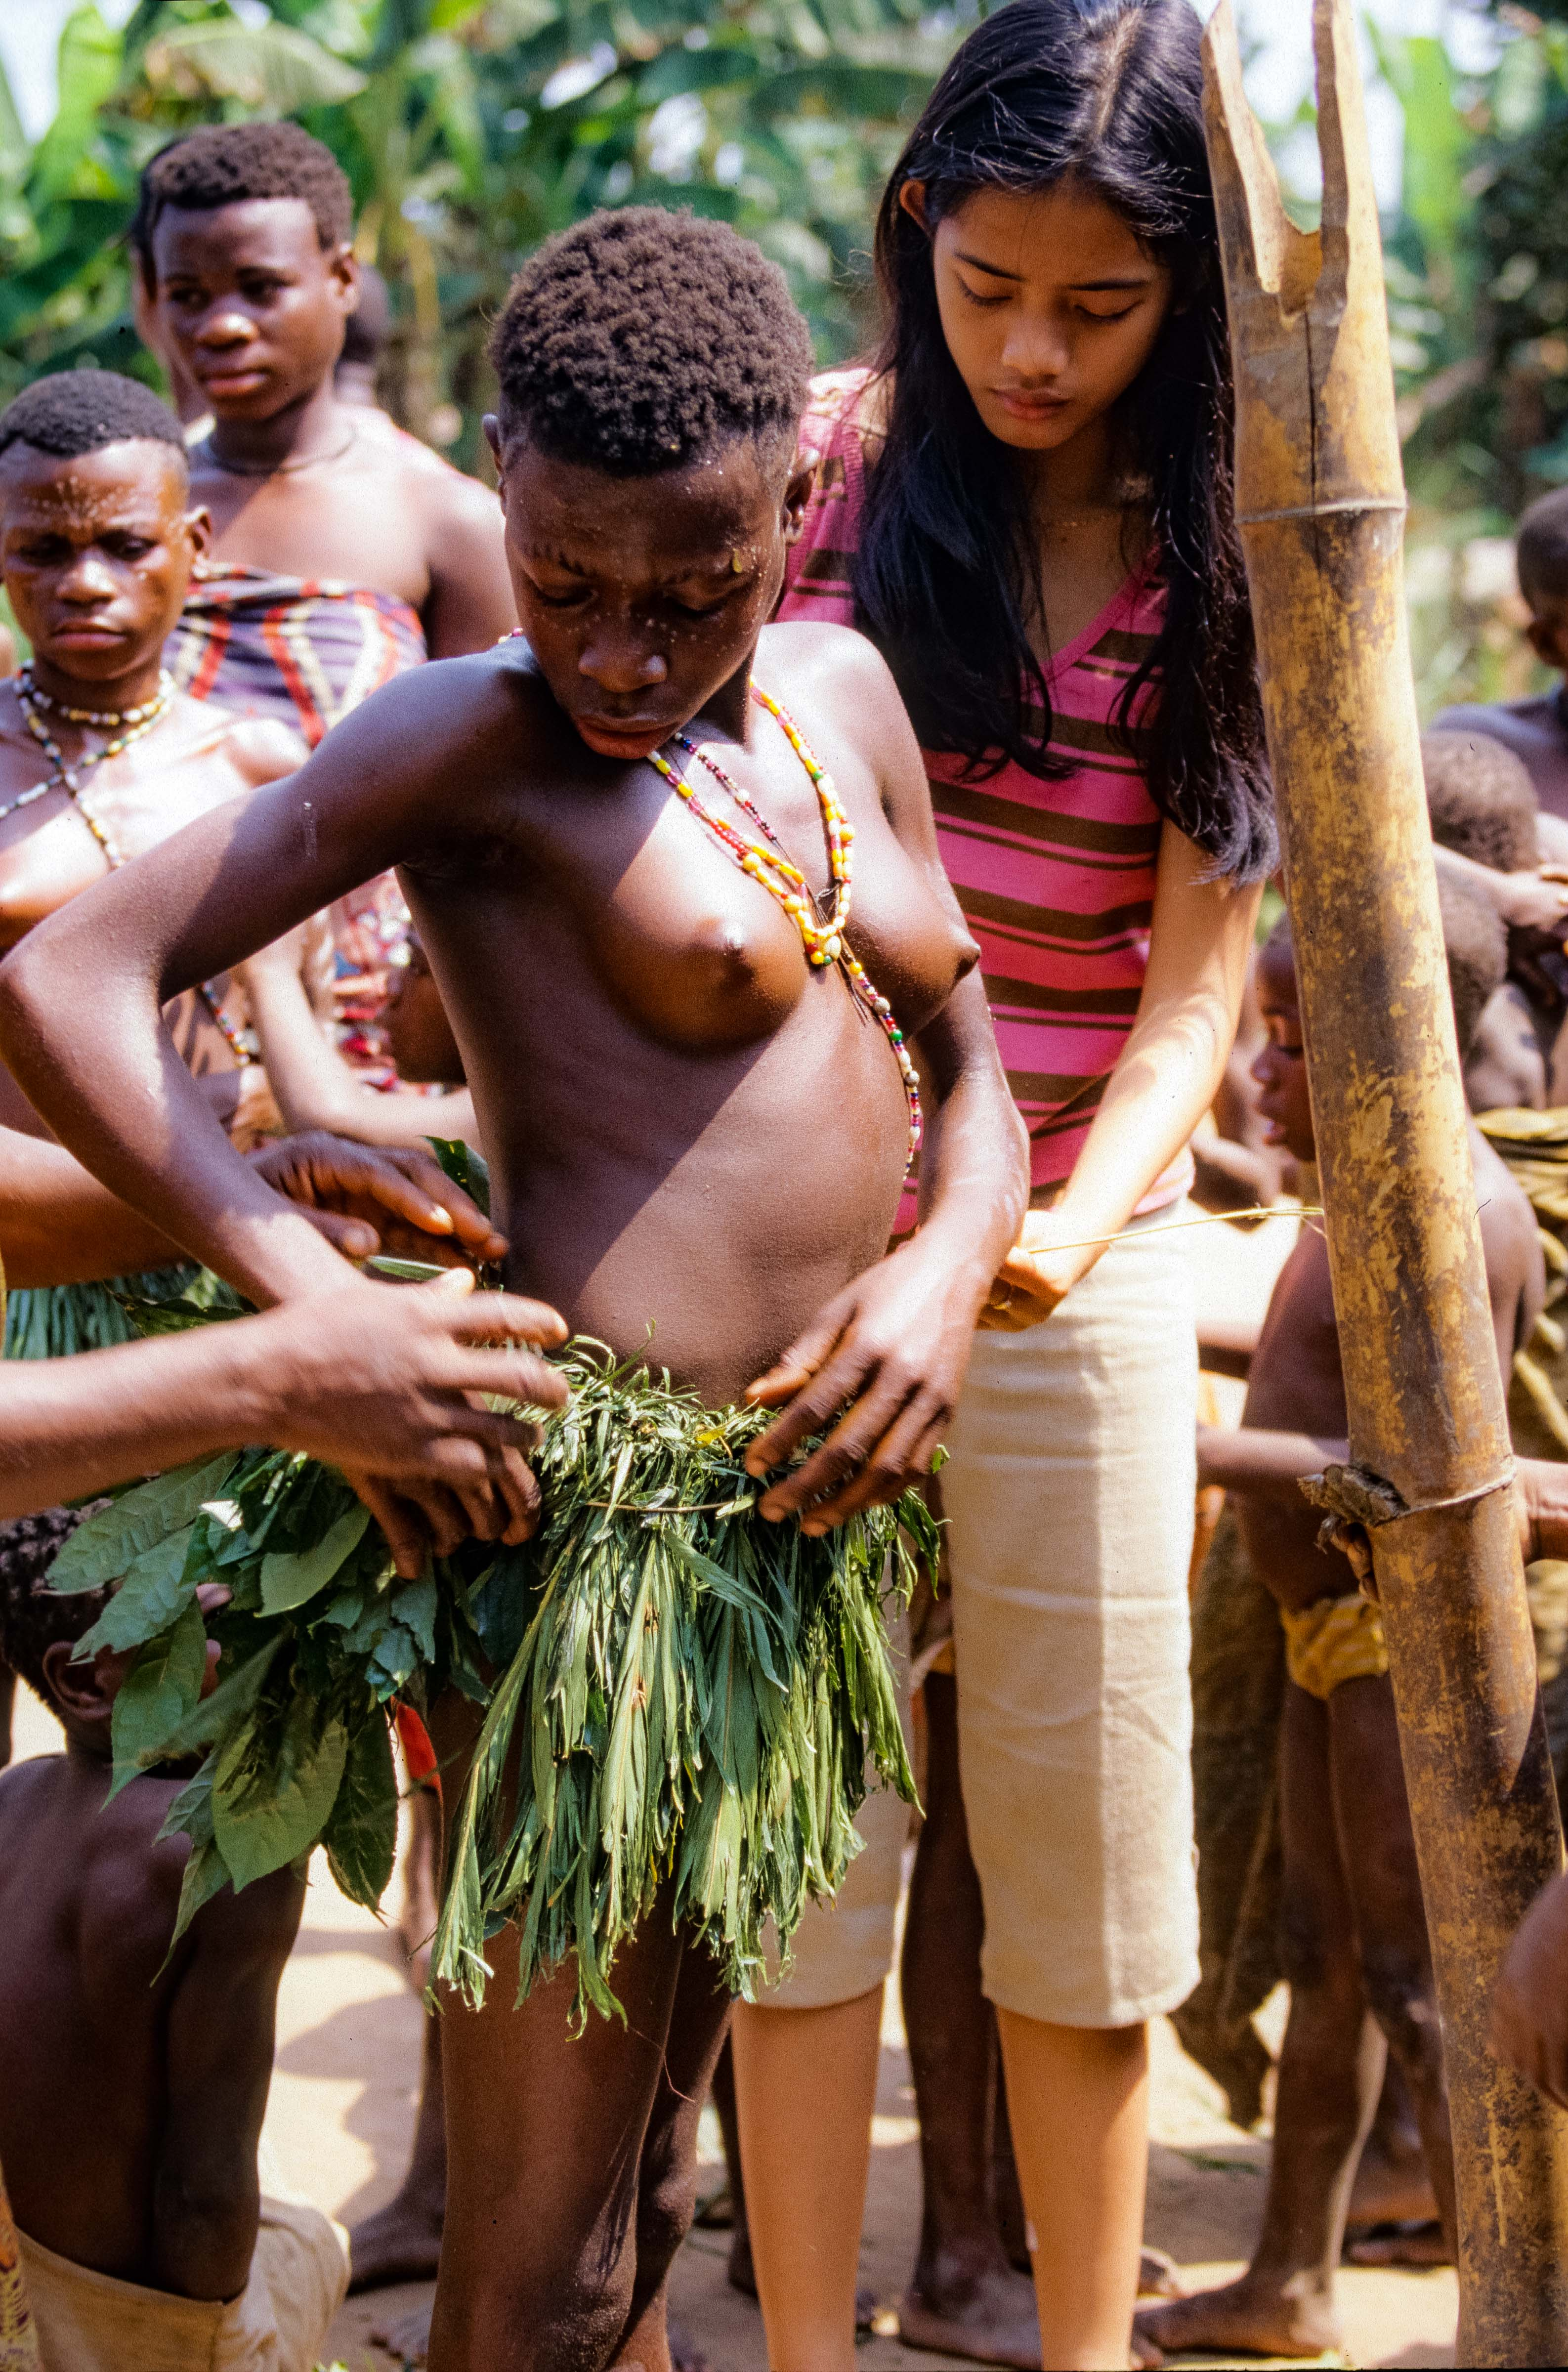 Central African Republic, Pygmy Girl Fastening Her Skirt, 2000